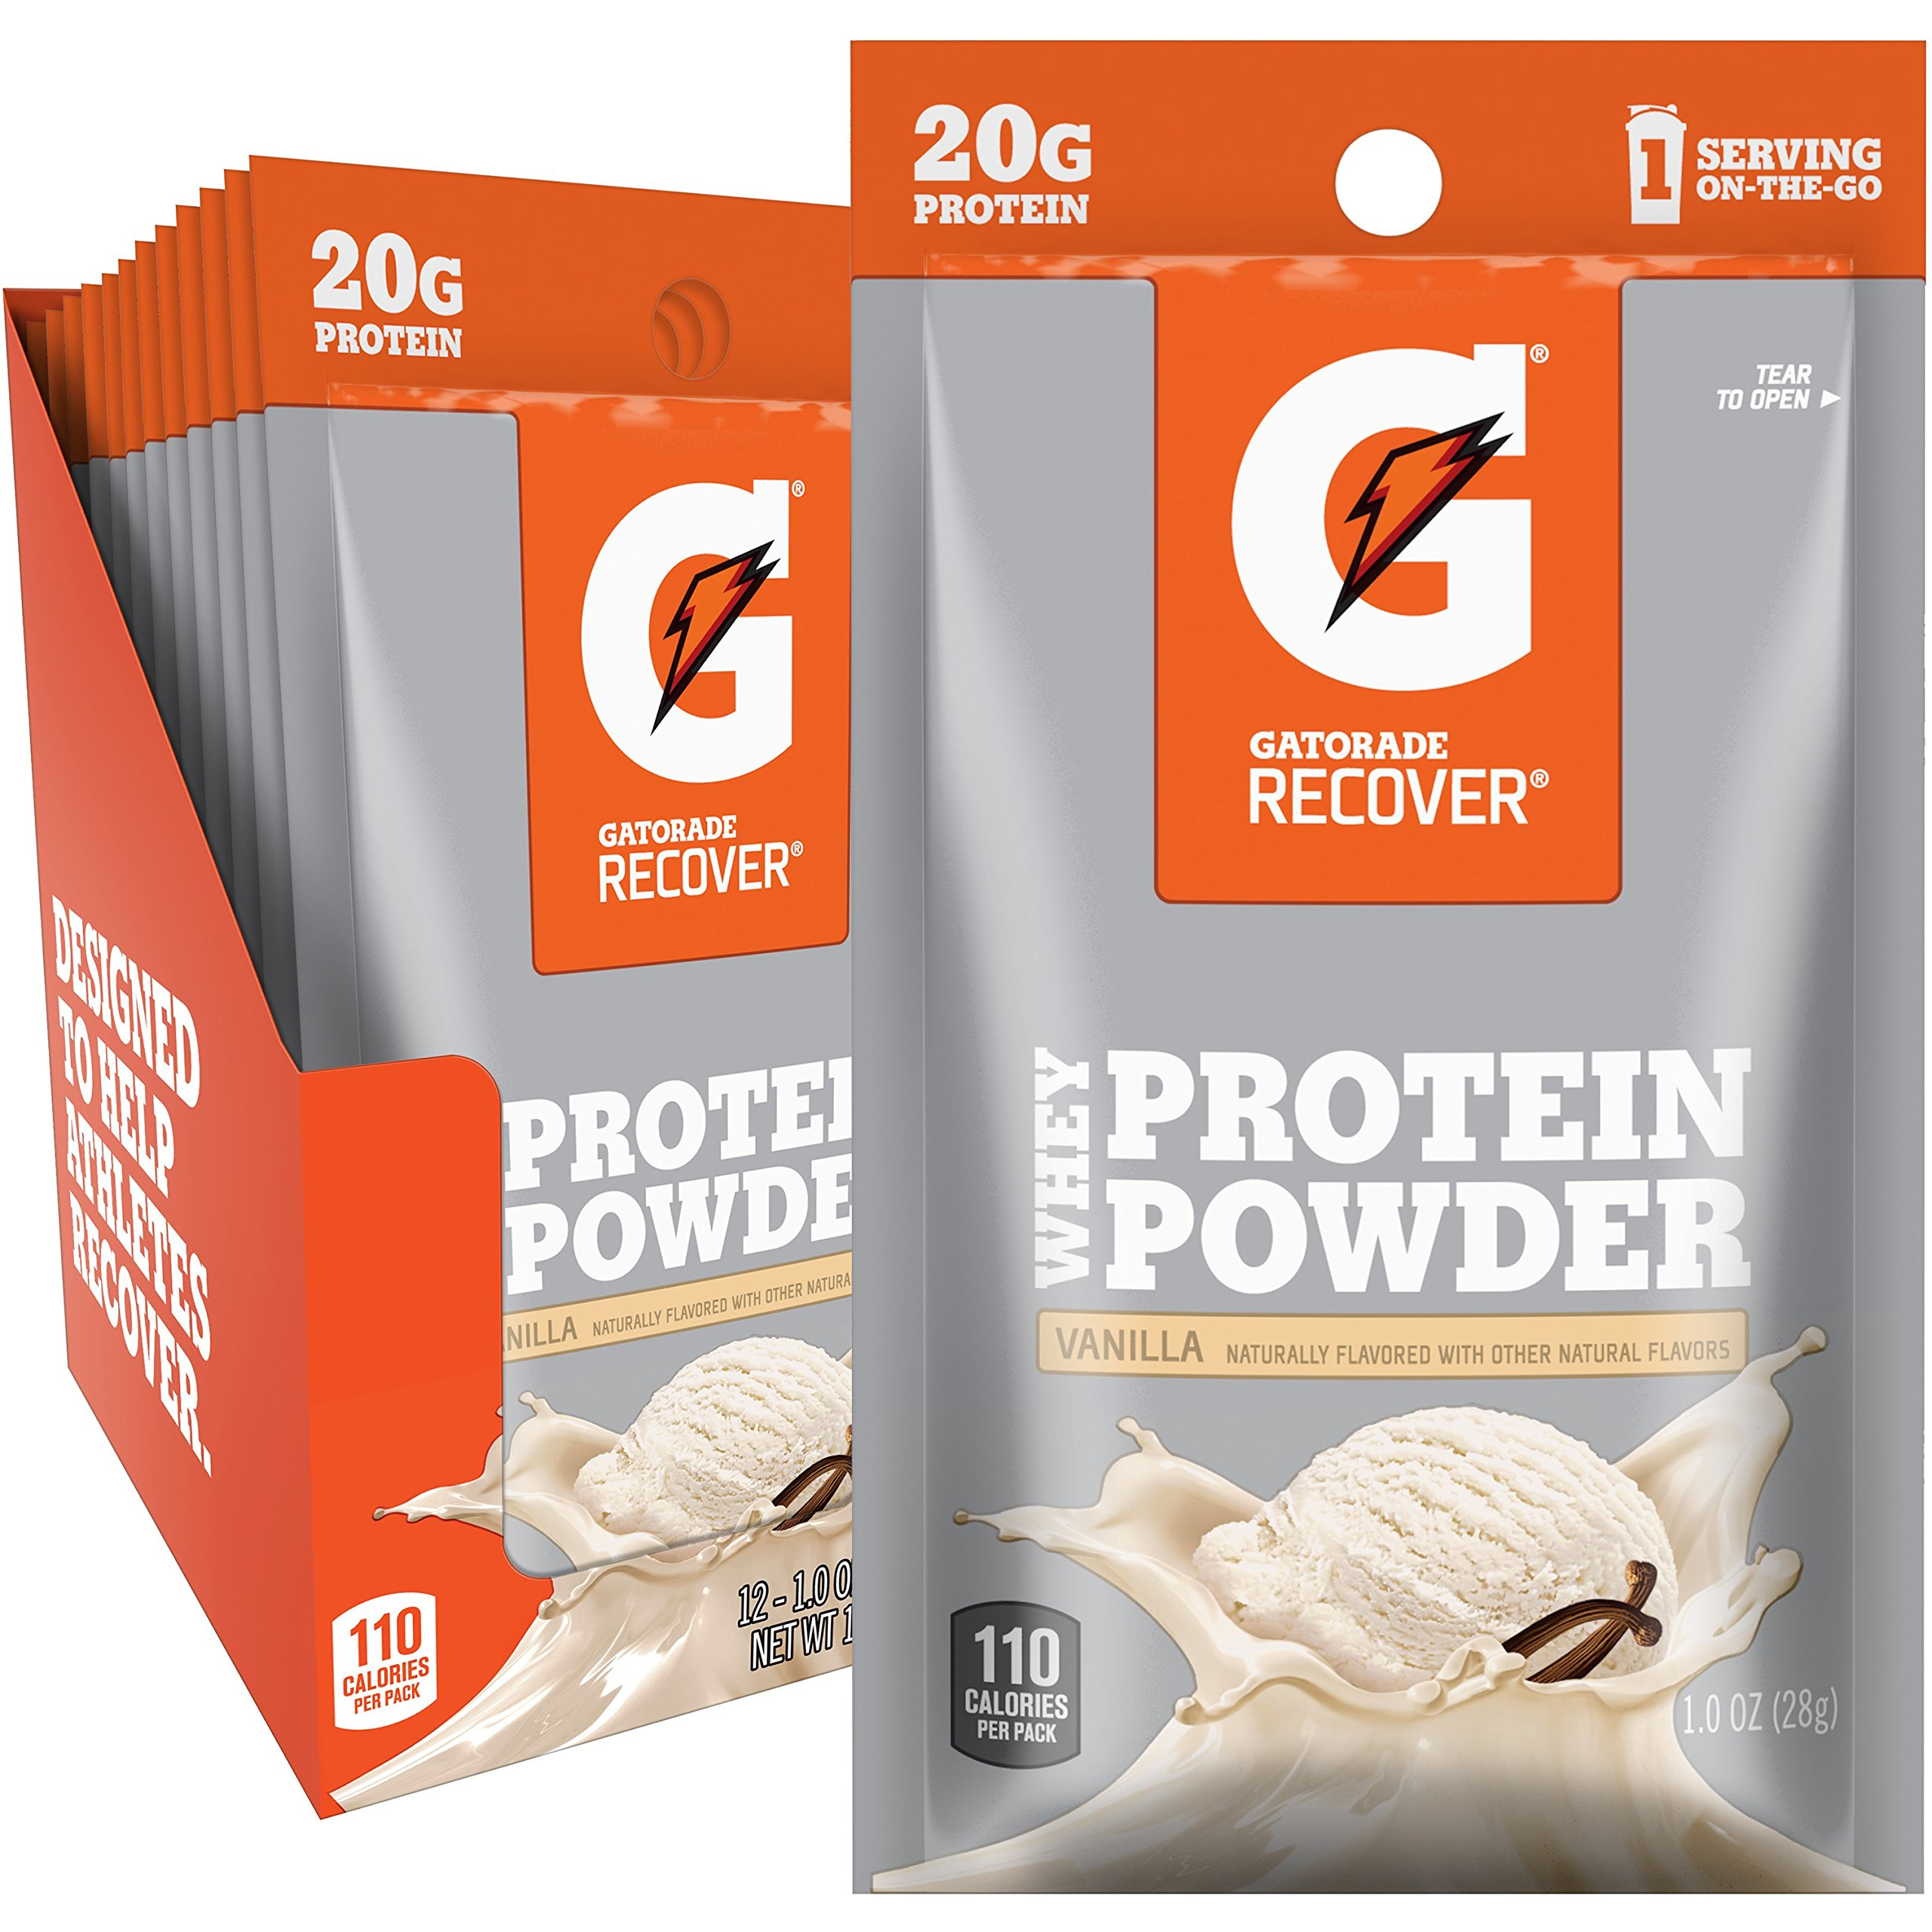 Gatorade protein powder